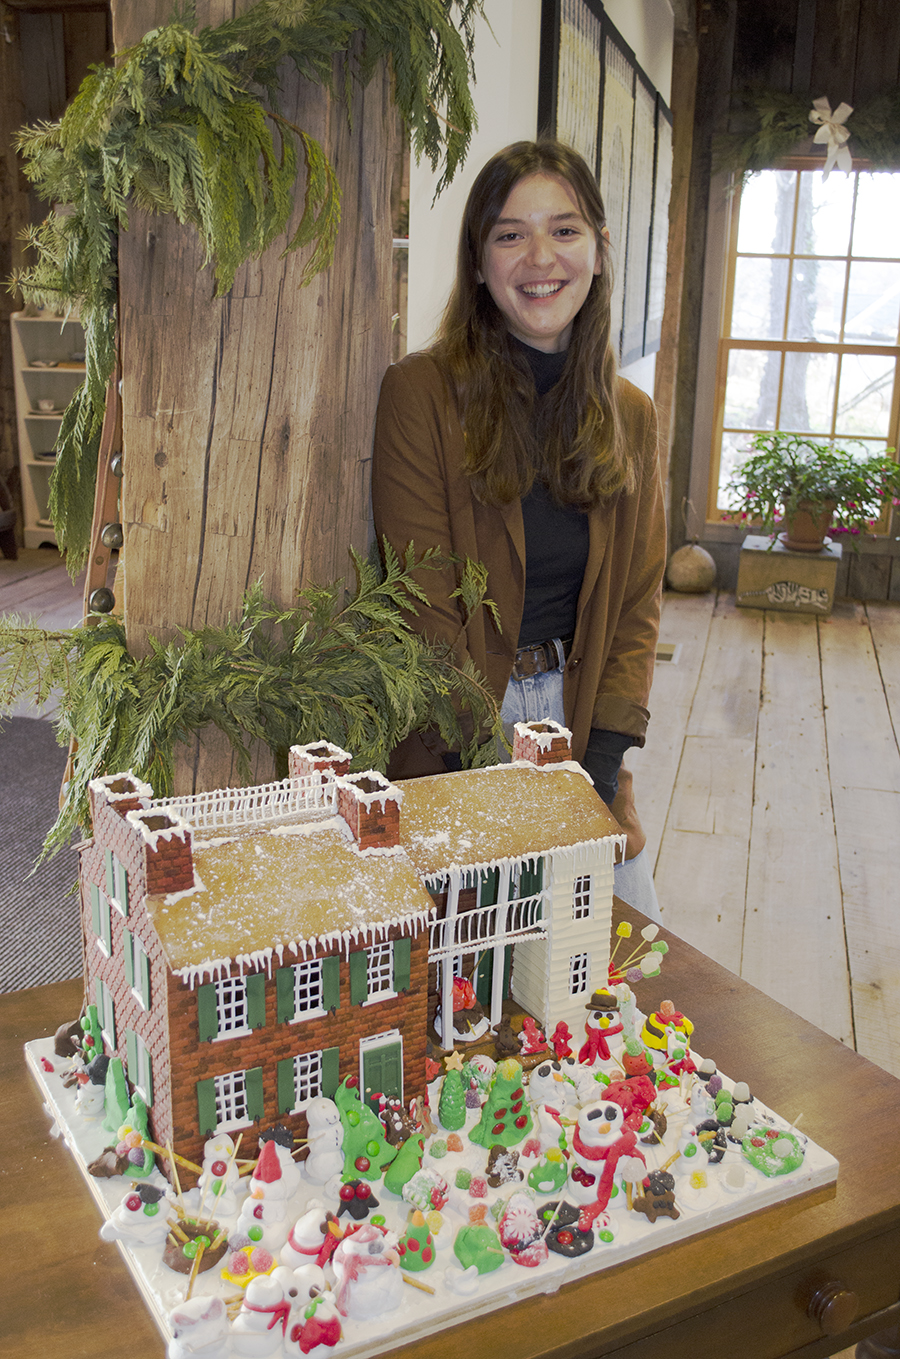 Image of student artist with a gingerbread model of the Wylie House